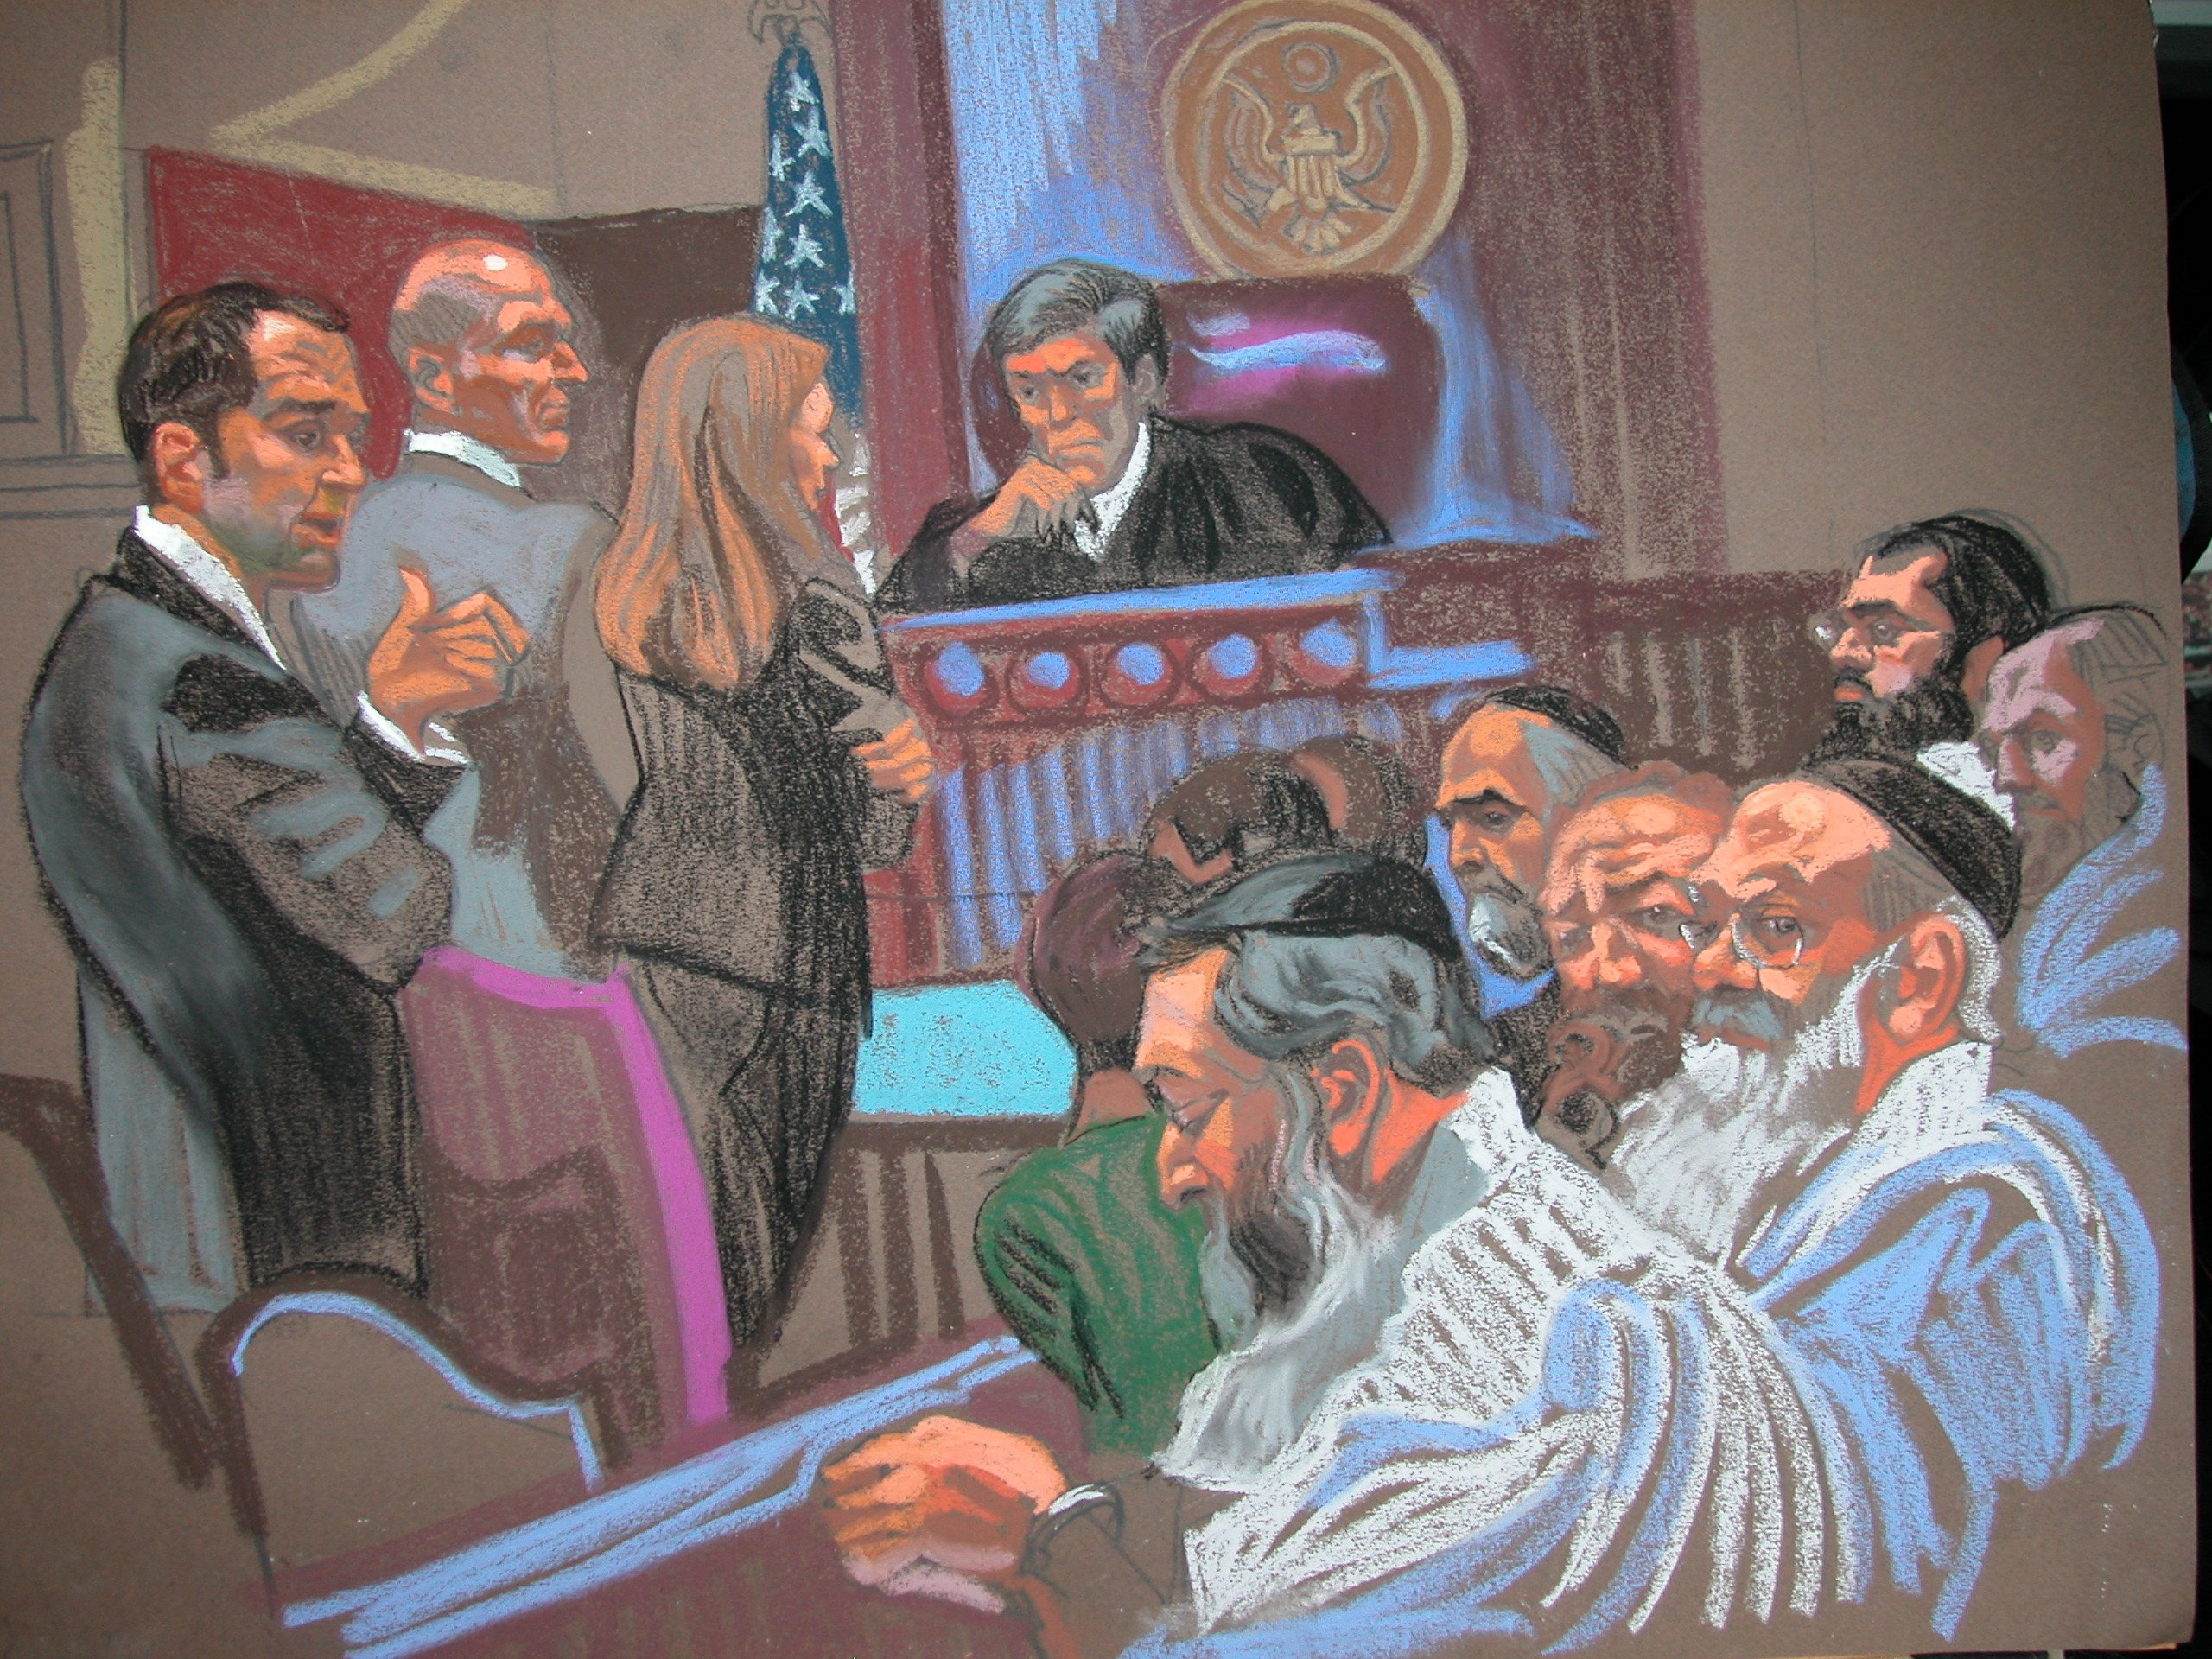 A group of rabbis face kidnapping charges after allegedly arranging assaults of Orthodox Jewish husbands to persuade them to grant divorces to their wives, authorities said Thursday, October 10, 2013. FBI raids on Wednesday night led to the arrest of three rabbis who were arraigned in federal court in New Jersey Thursday, according to court documents.